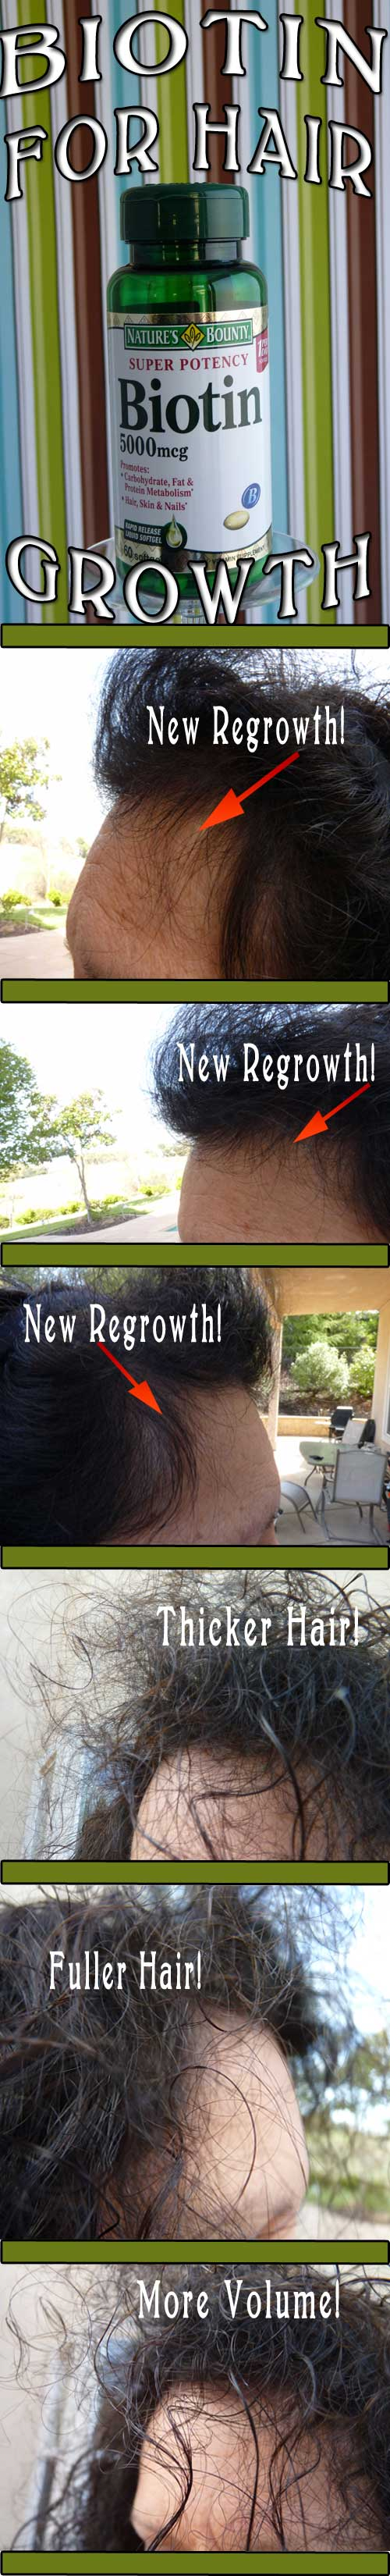 Biotin-For-For-Hair-Regrowth-#Biotin-#Hair-Regrowth